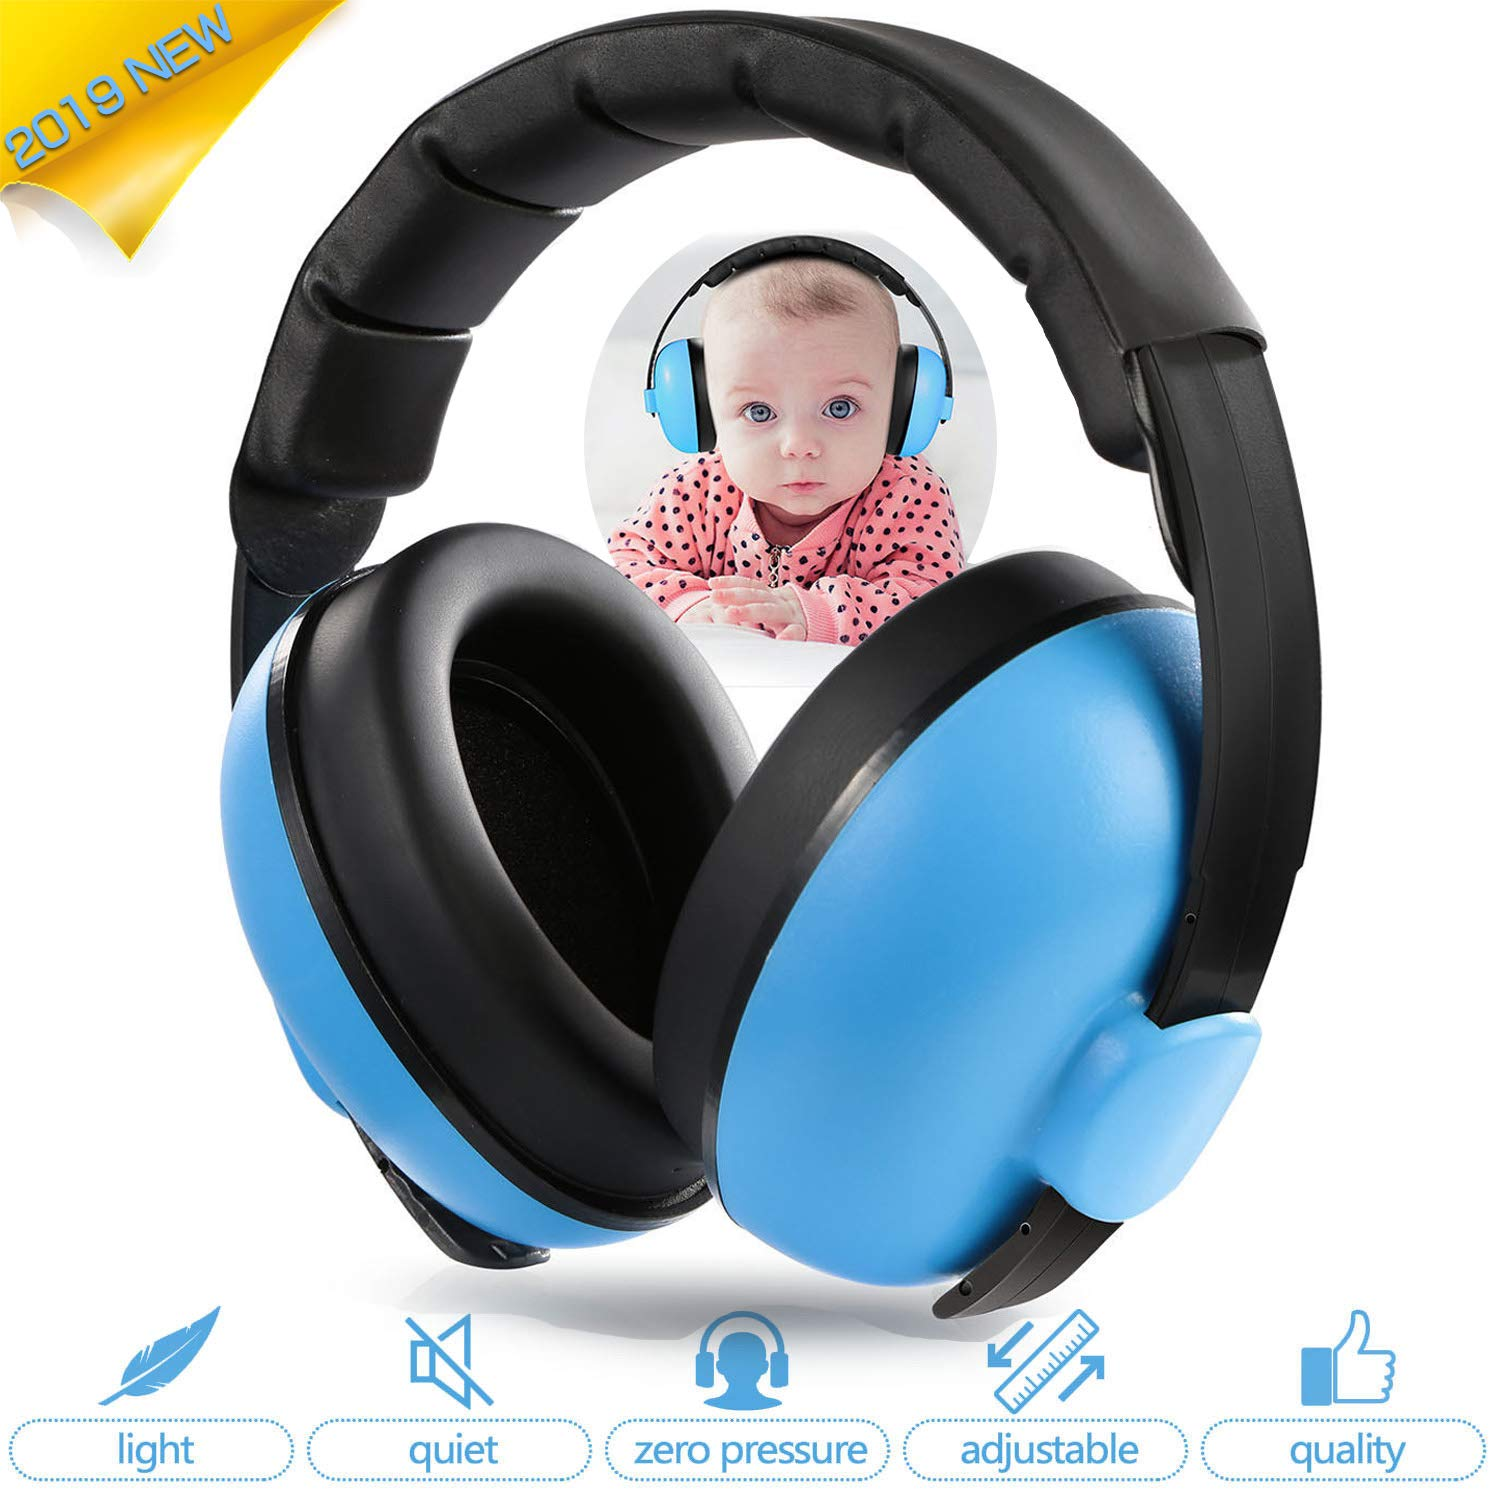 Baby Ear Protection Noise Cancelling Headphones Infant Hearing Protection Noise Reduction Baby Earmuffs for 0-3 Years Babies Toddlers Infant Sleeping Airplane Concerts Fireworks Blue